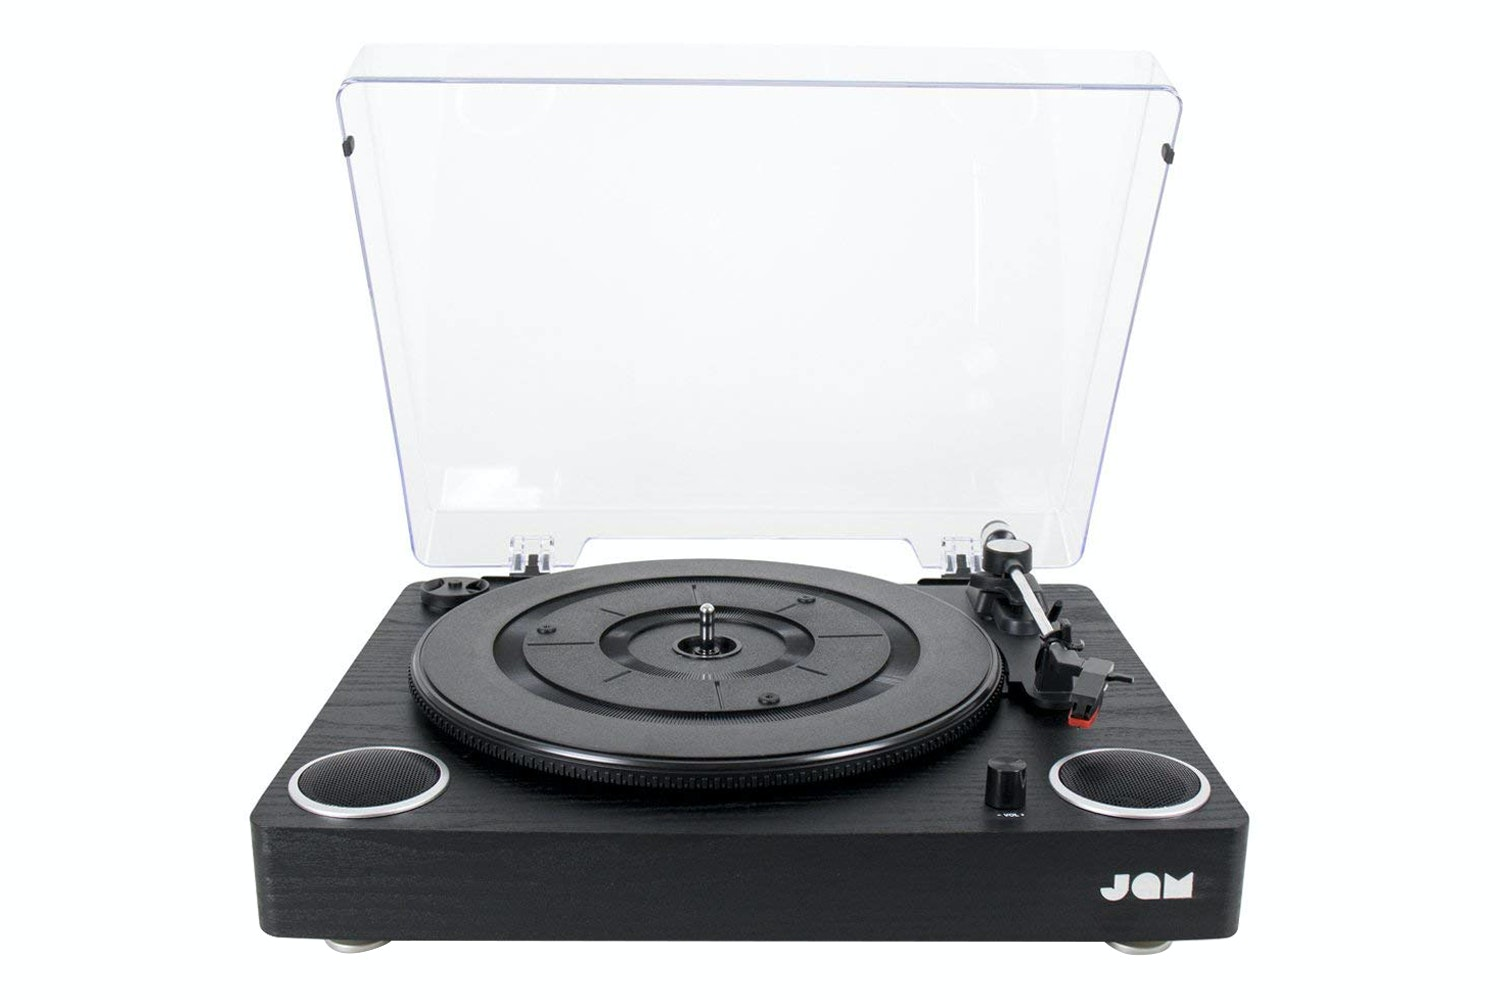 Jam Play Turntable Built In Speakers Vinyl Record | HX-TTP300BWD-GB